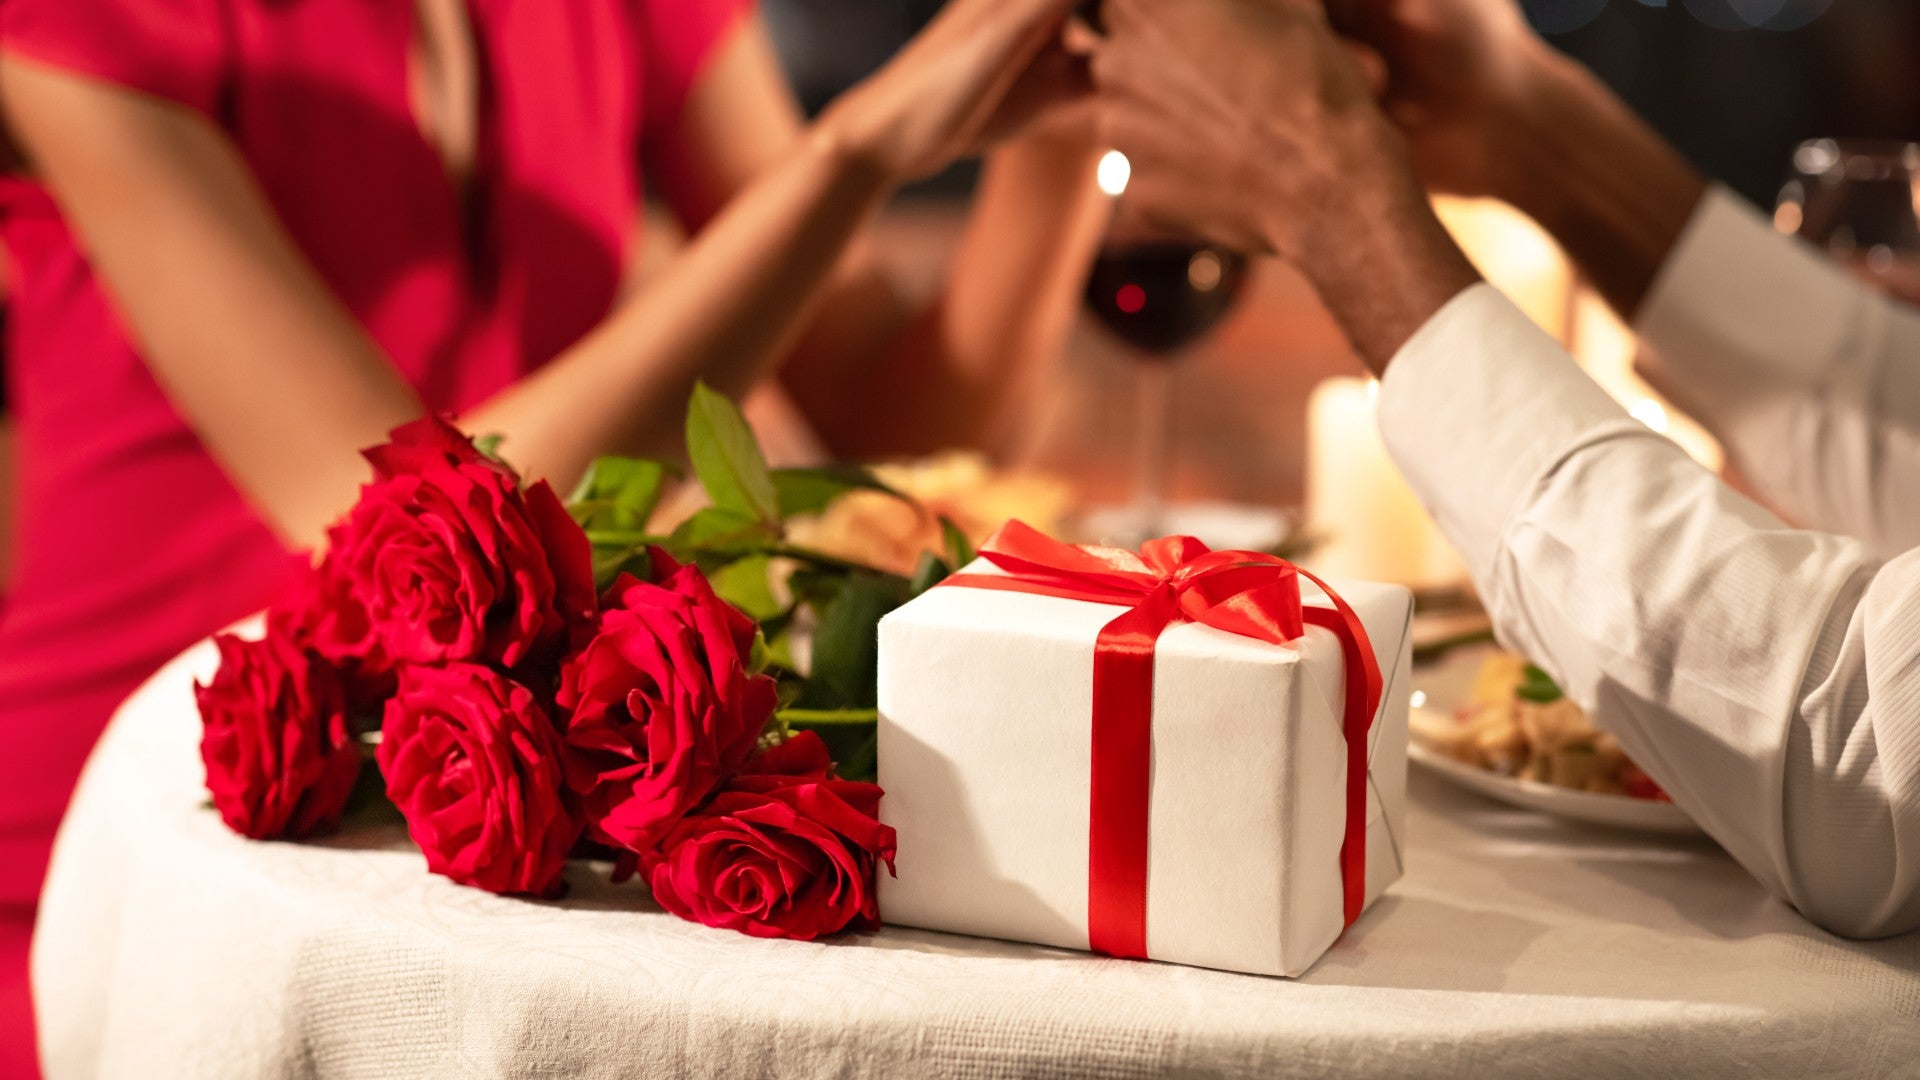 5 Great Valentine's Day Gifts For Him At Sephora